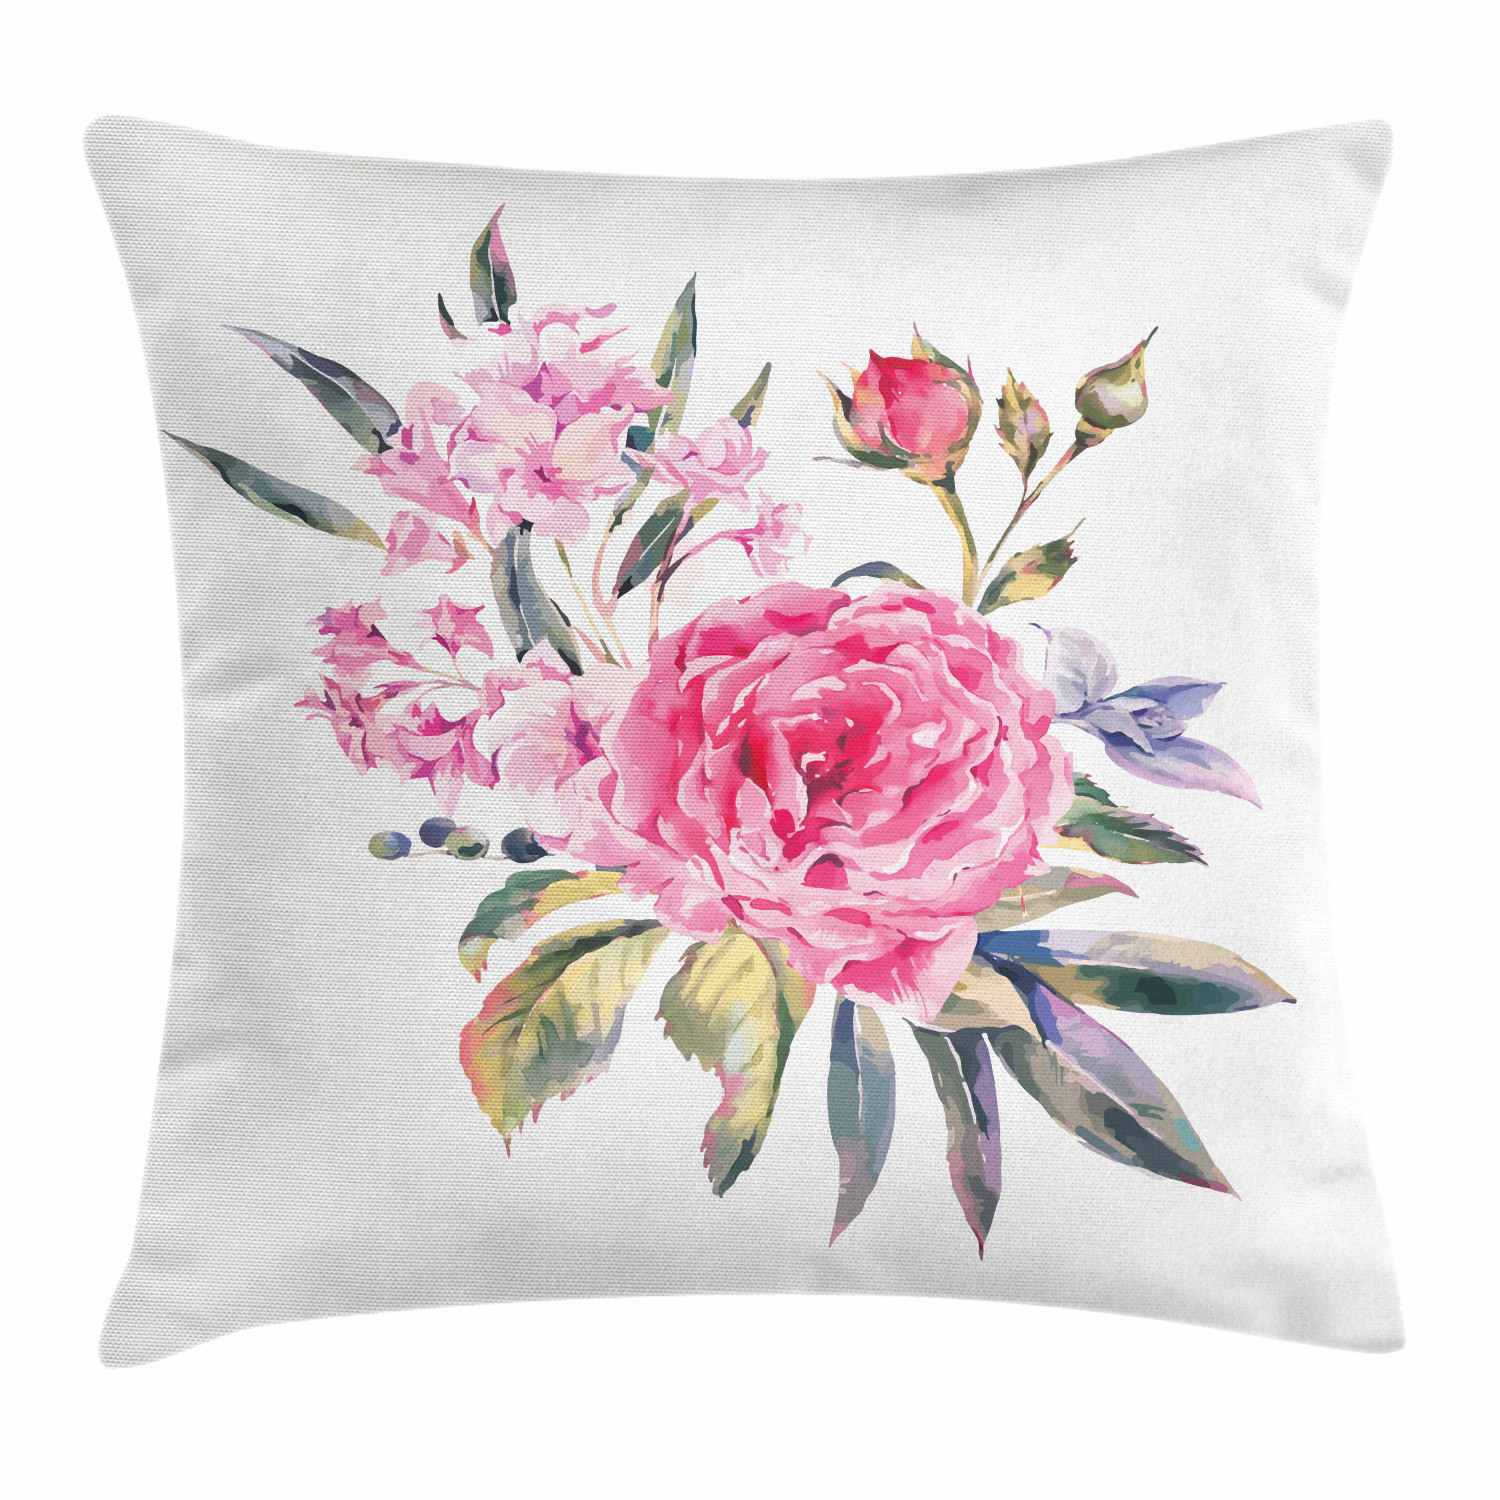 Floral Throw Pillow Cushion Cover Romantic Watercolor Bouquet With Buds Of Roses And Wildflowers Vintage Botany Theme Decorative Square Accent Pillow Case 24 X 24 Inches Multicolor By Ambesonne Walmart Com Walmart Com